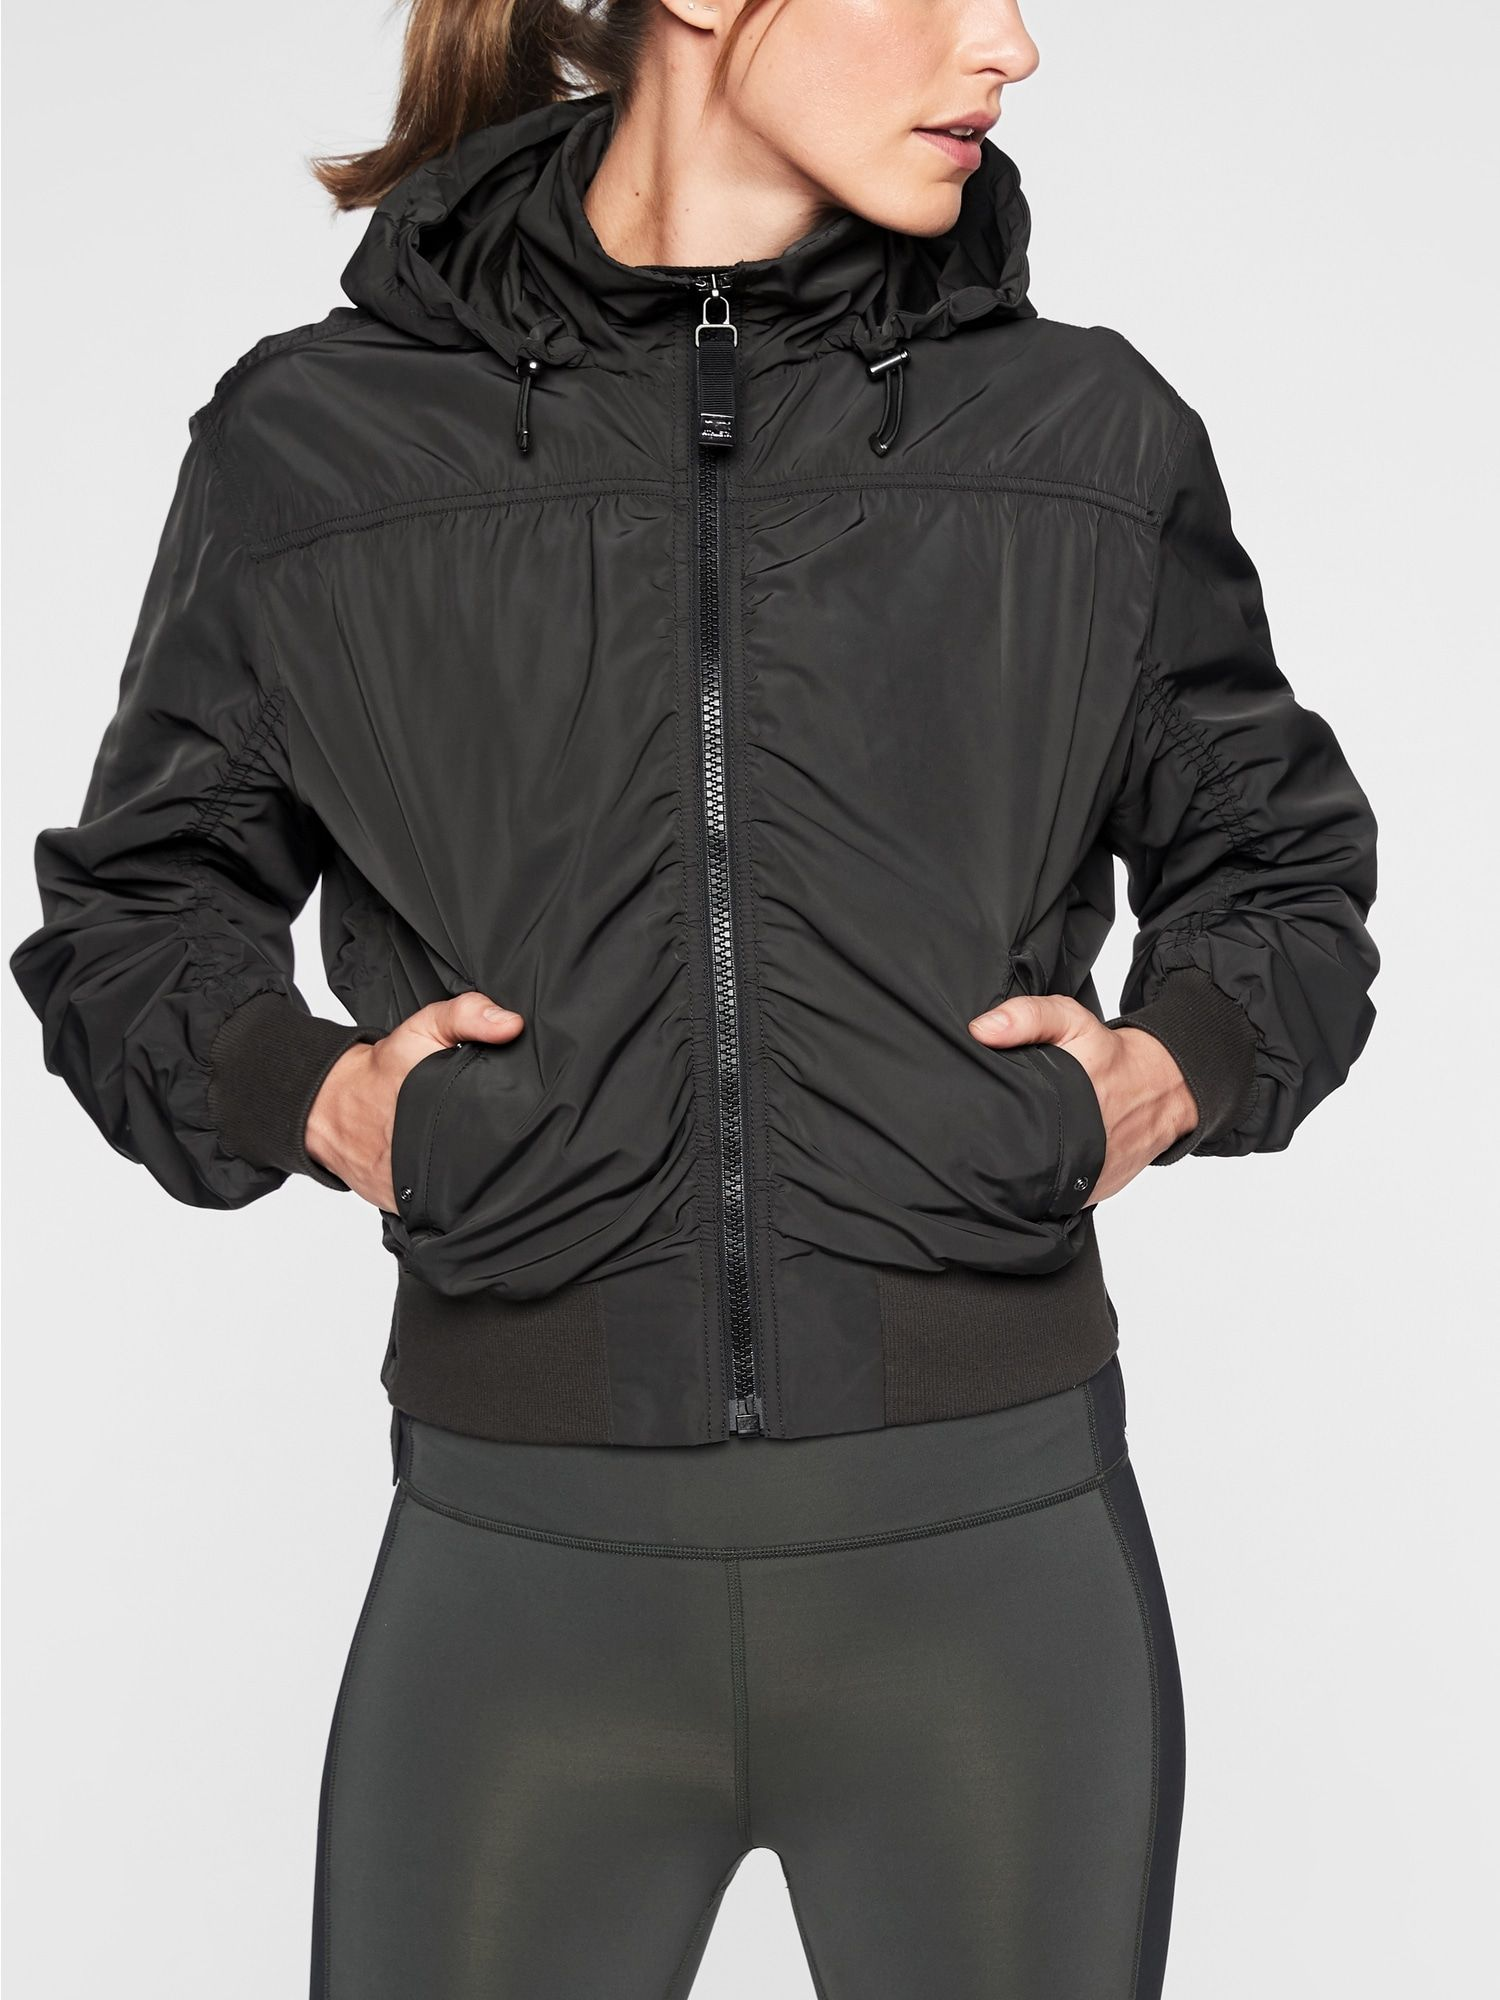 Point Reyes Bomber Athleta In 2021 Petite Workout Clothes Hiking Outfit Workout Clothes Sale [ 2000 x 1500 Pixel ]